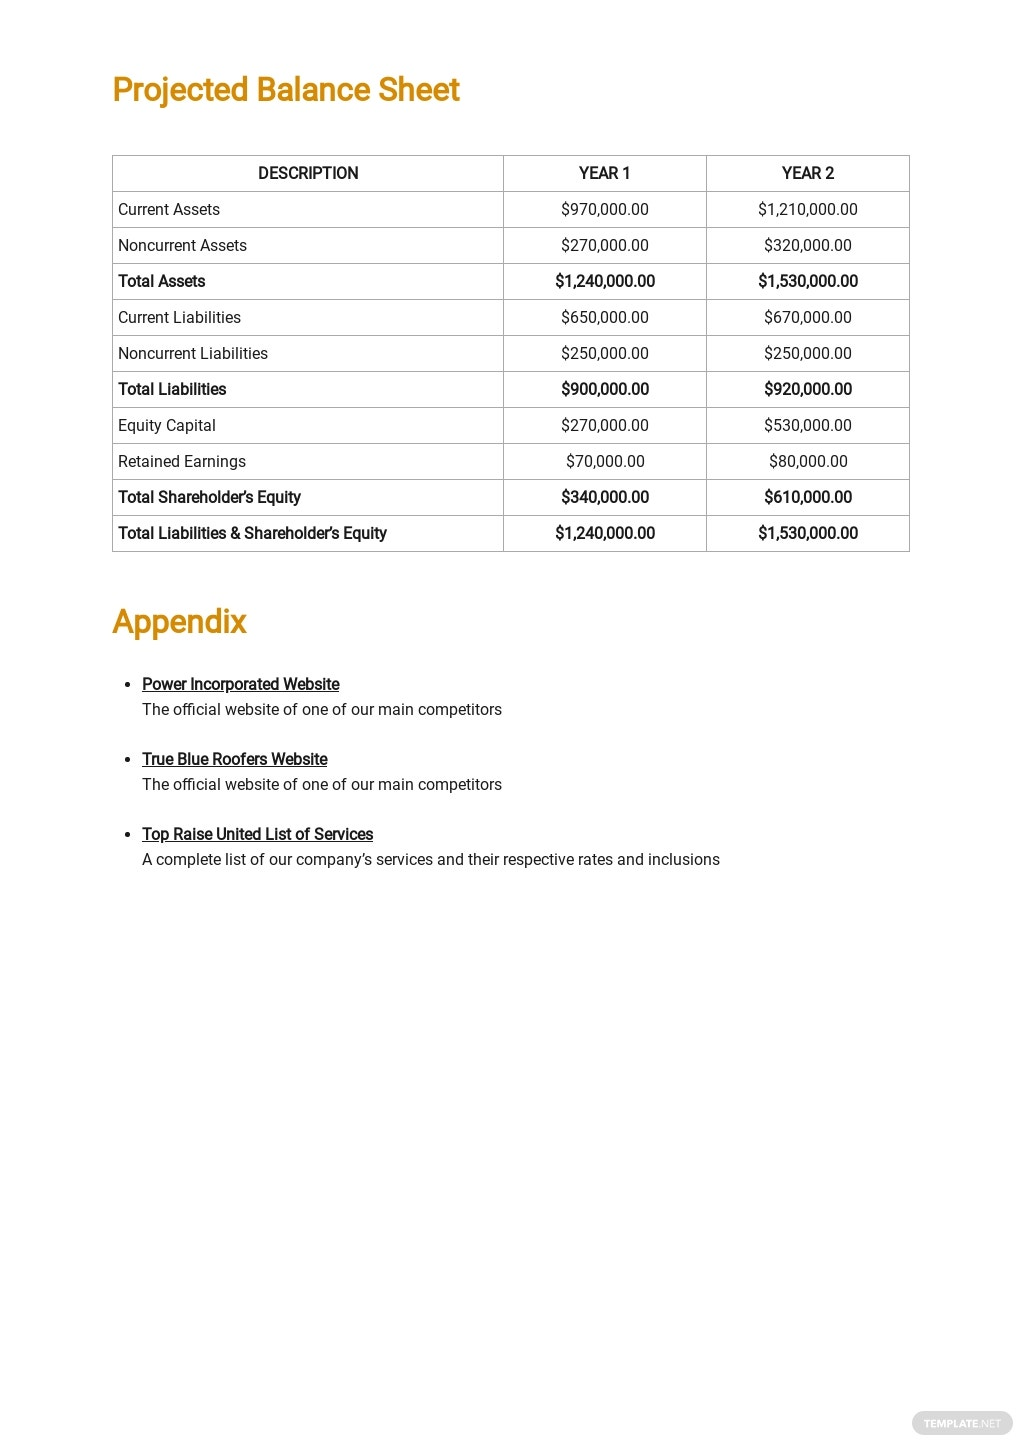 Roofing Company Business Plan Template 6.jpe